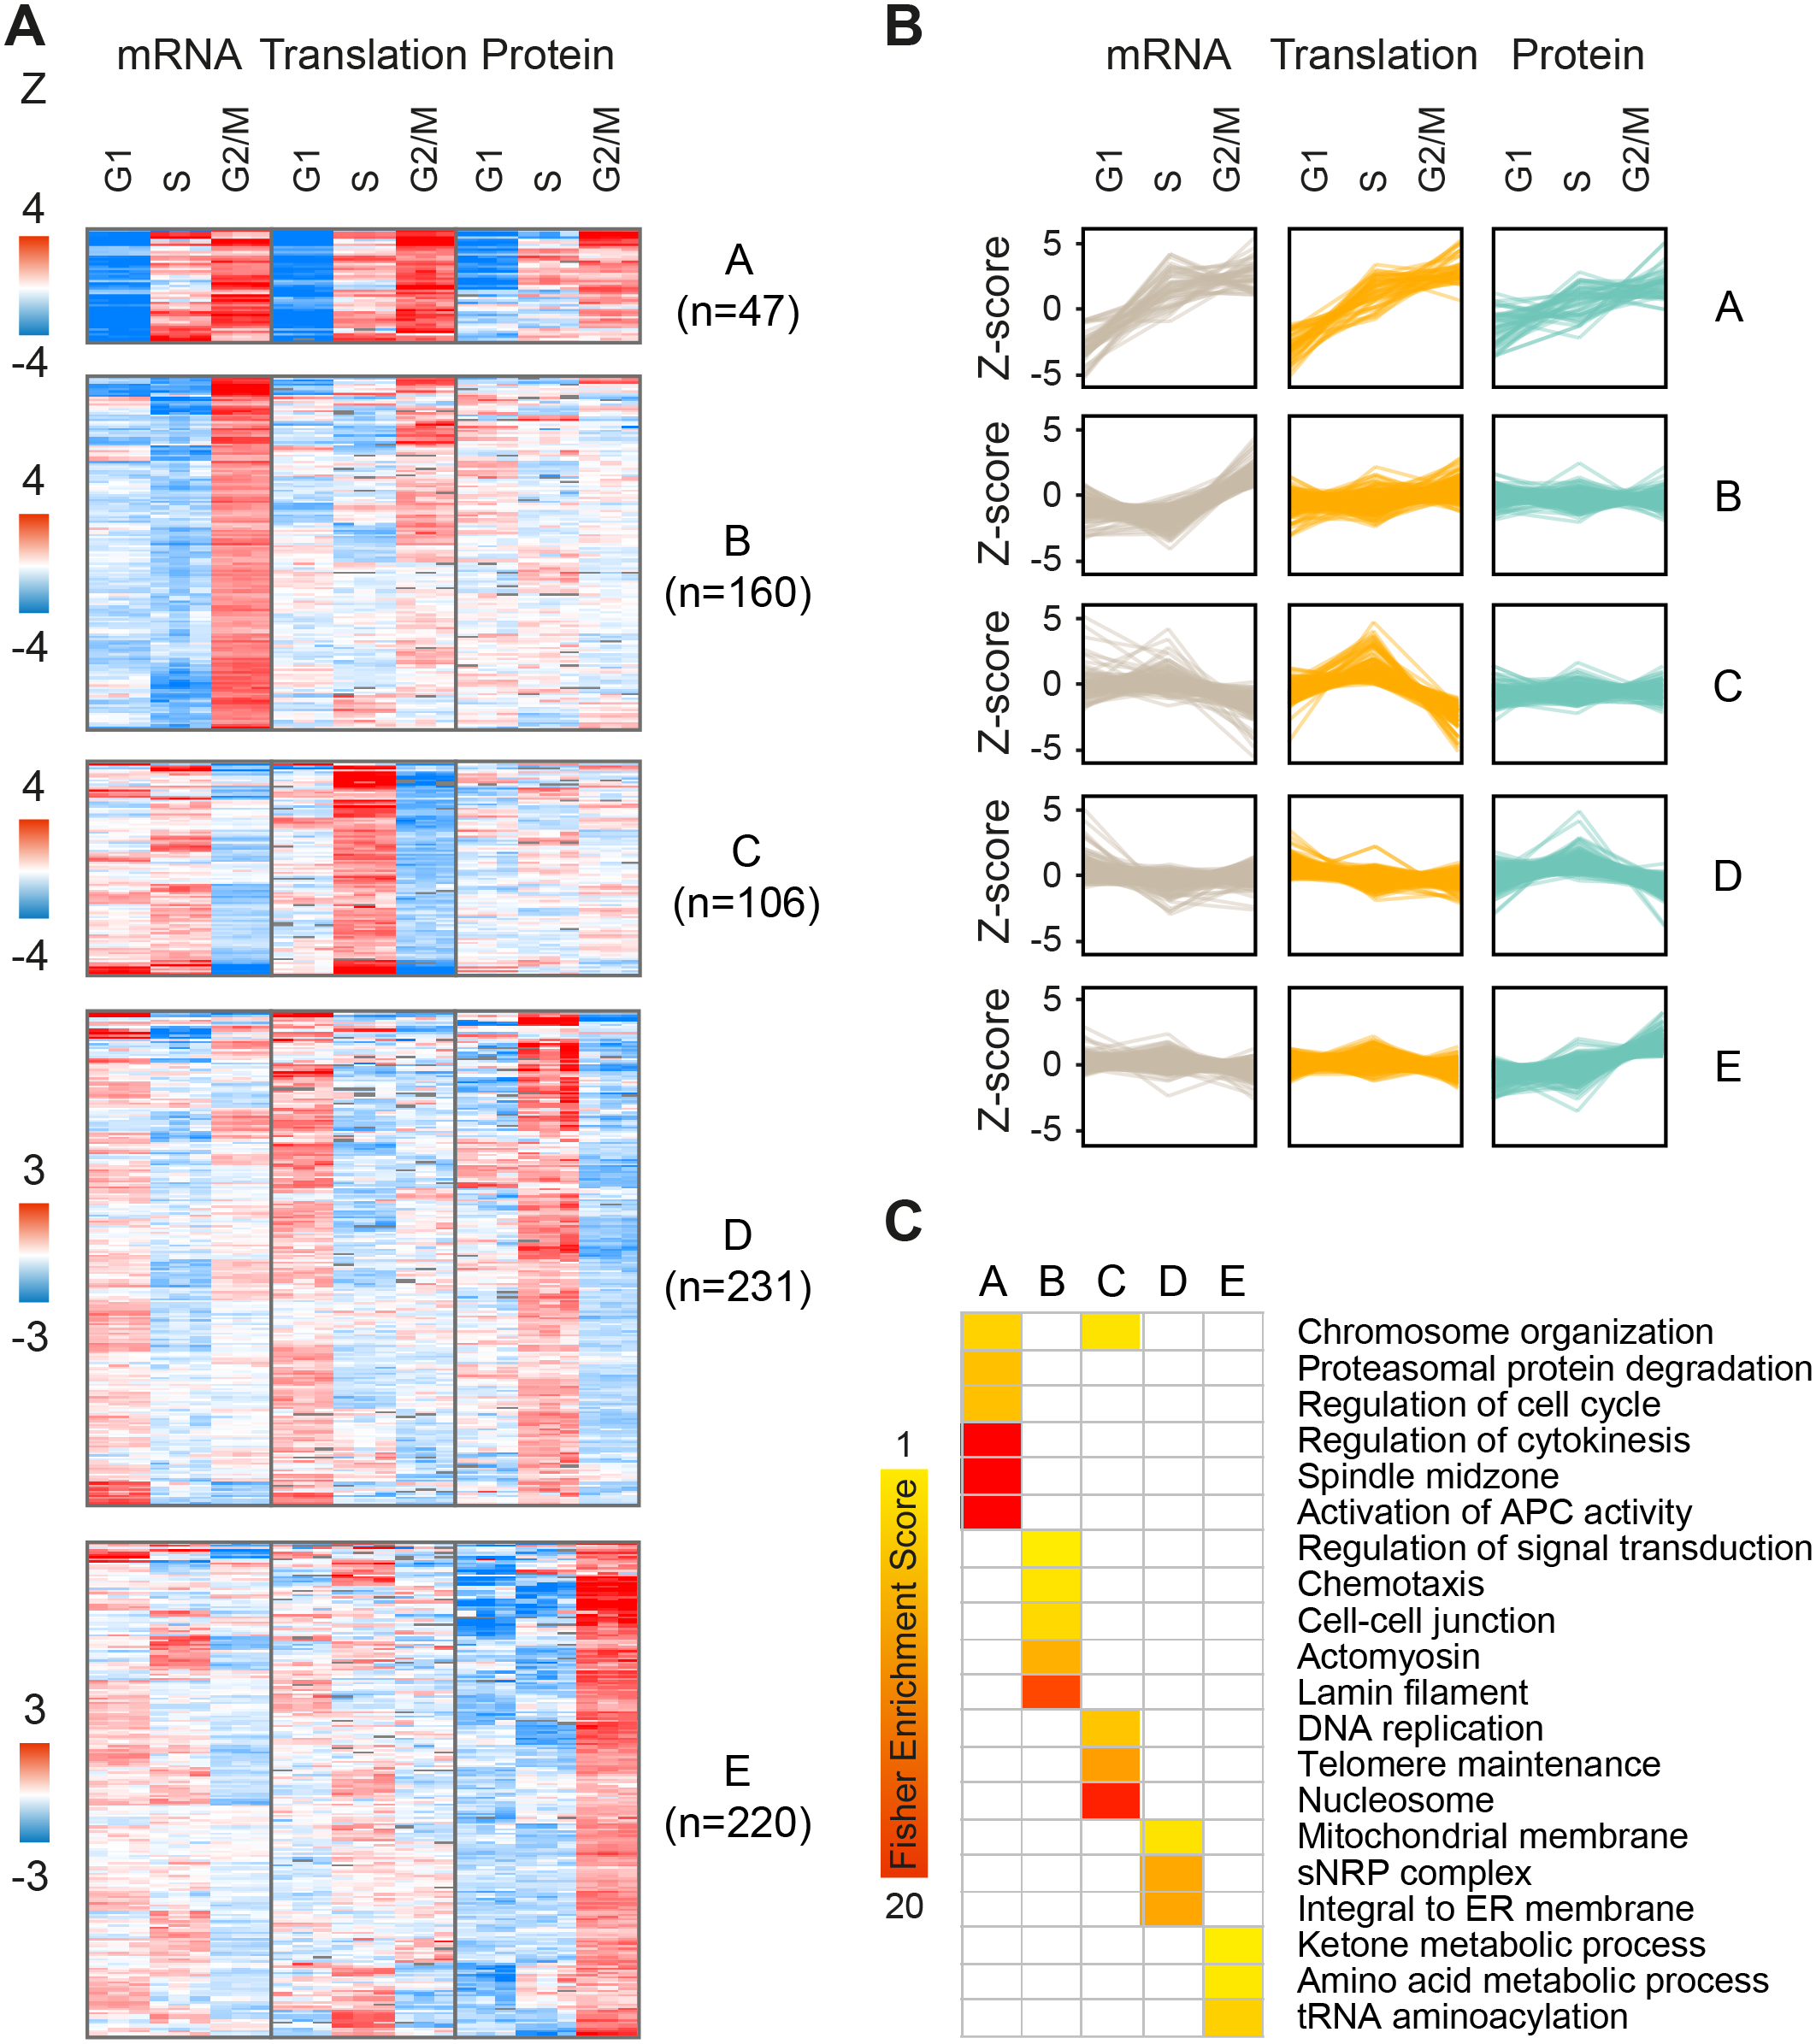 Clustering of periodic gene products.